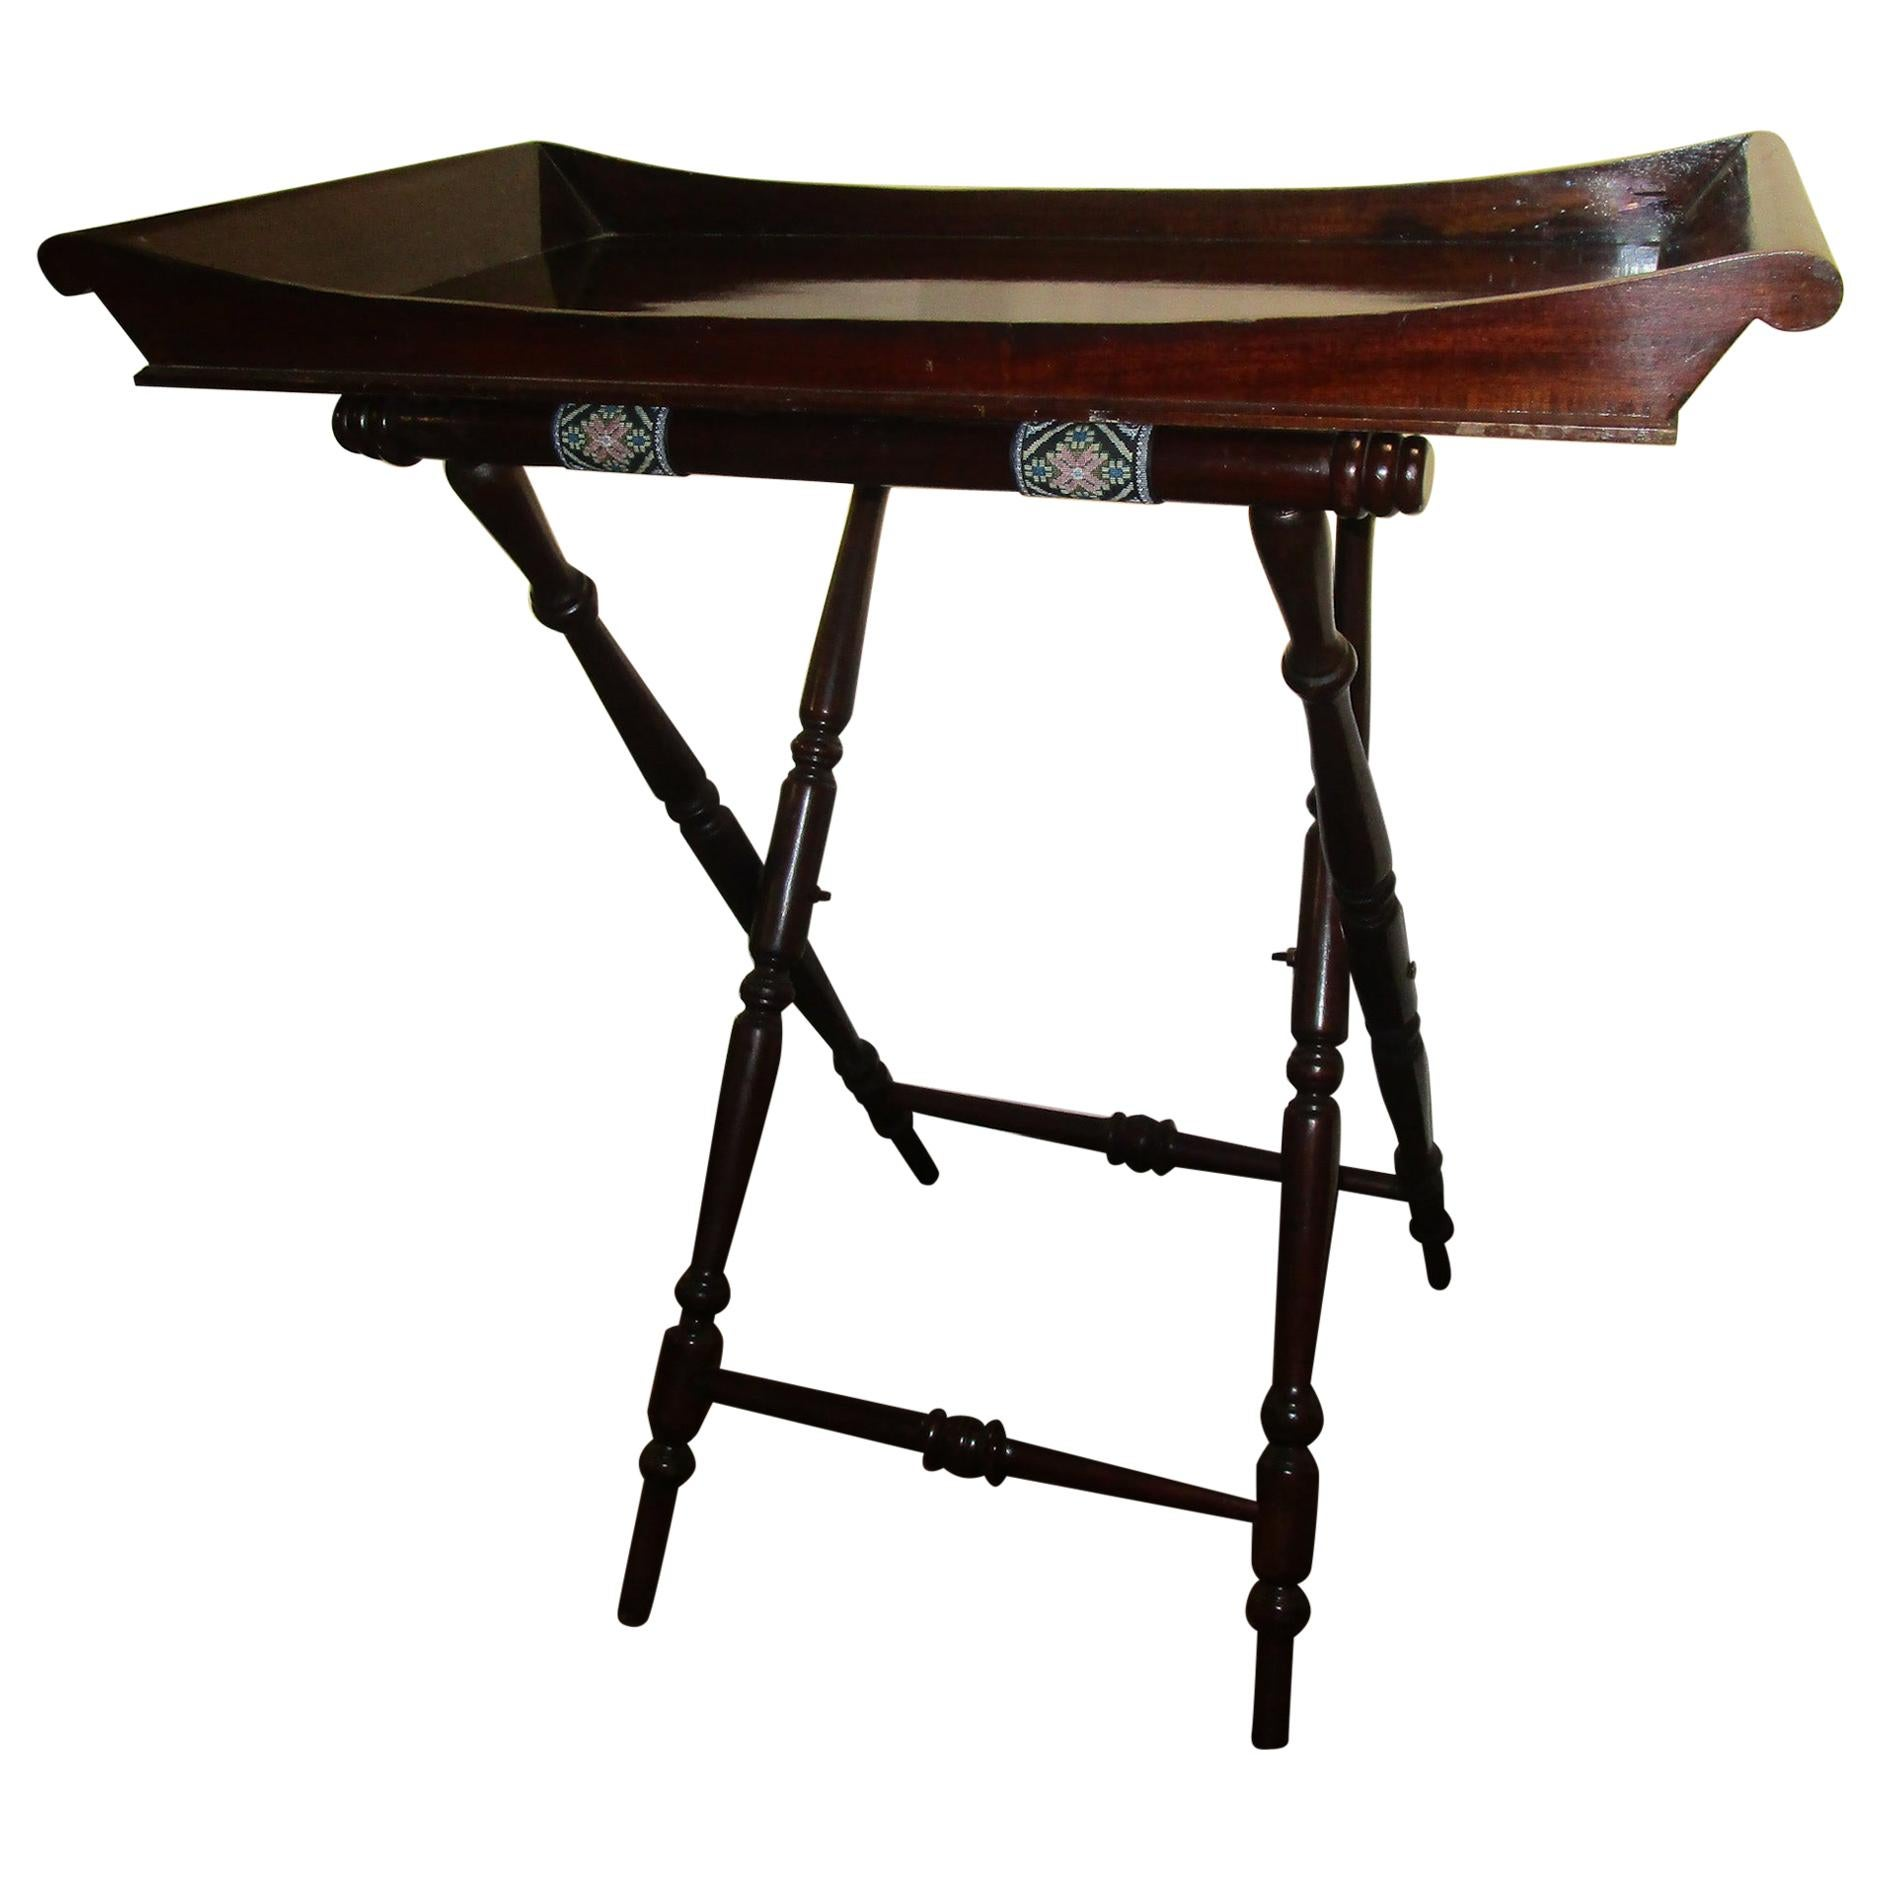 19th Century Mahogany English Butler's Tray on Turned Wooden Stand